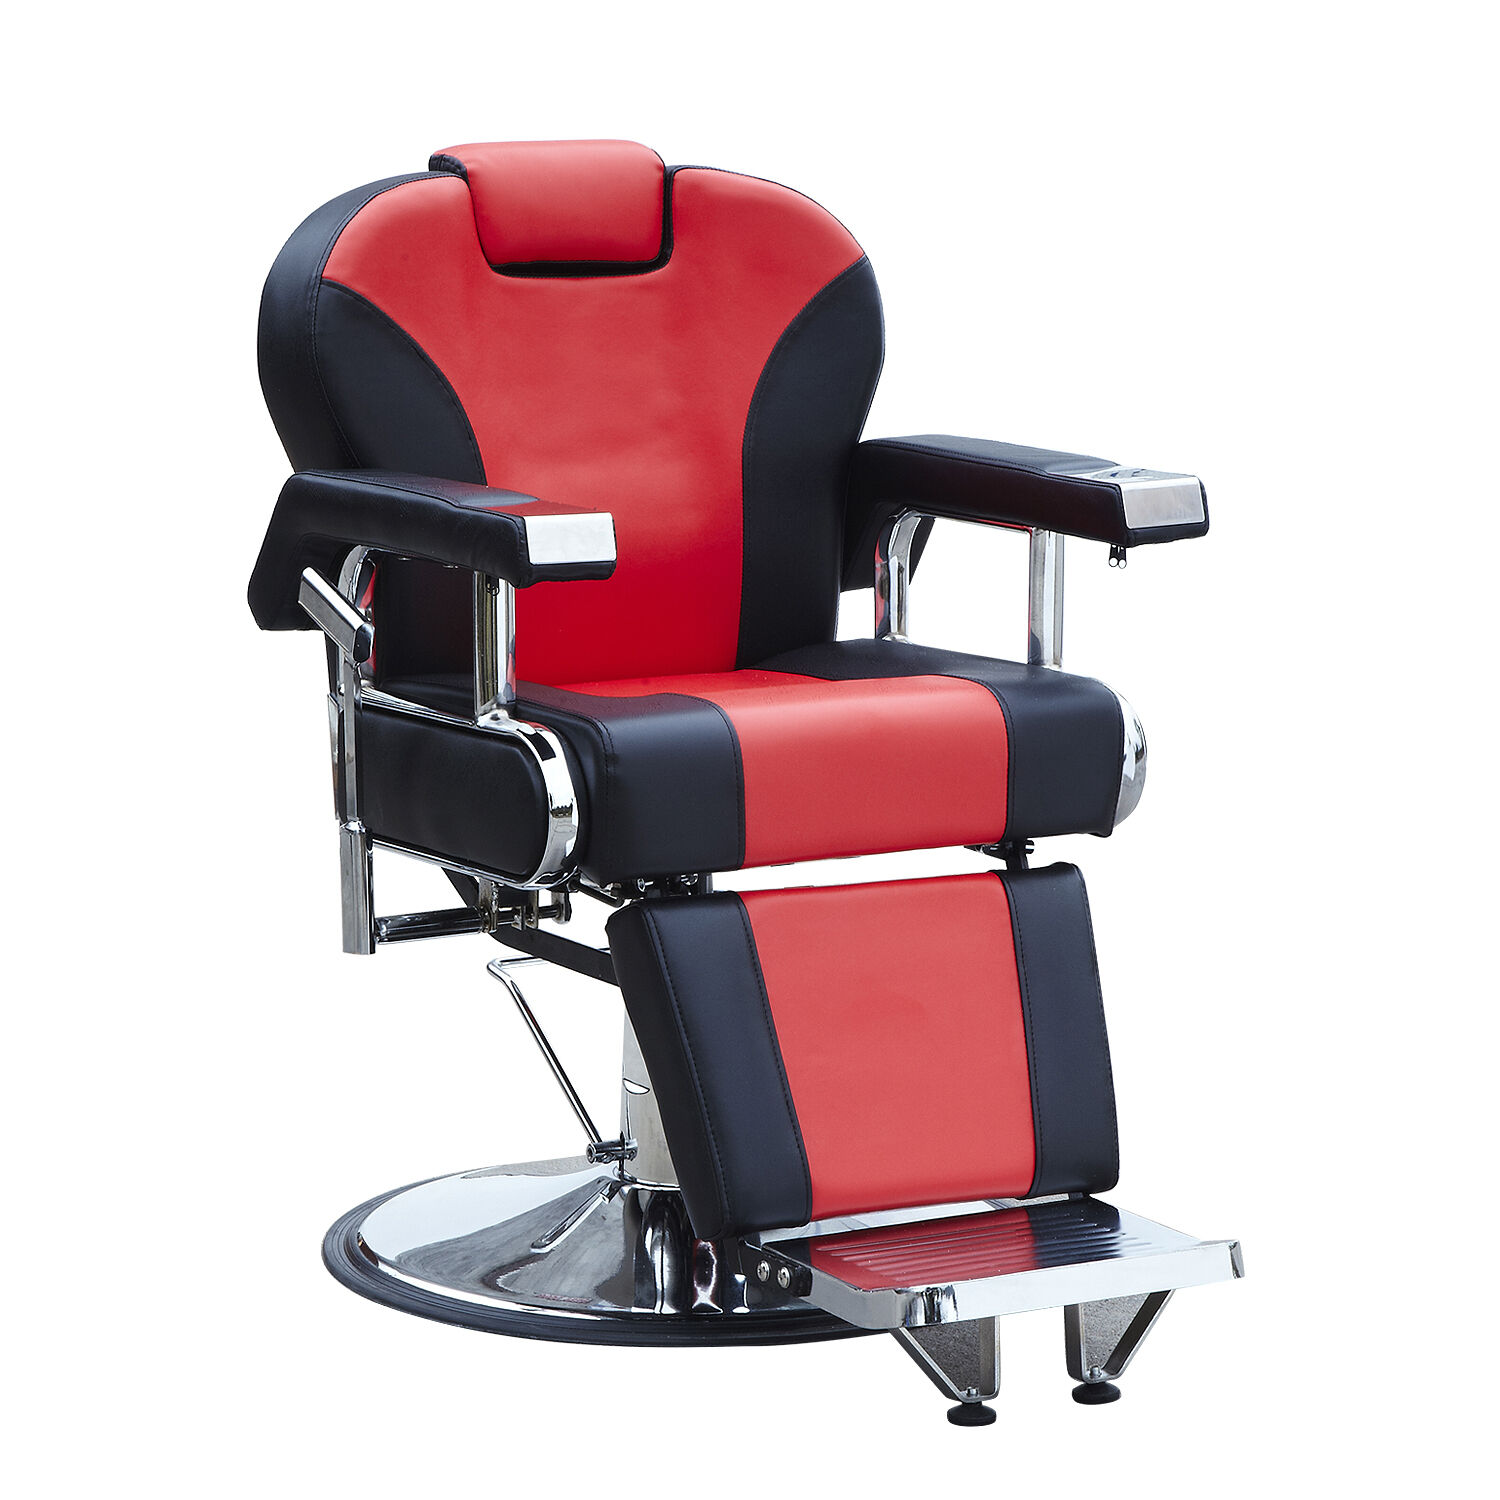 Red Barber Chair Details About Hydraulic Recline Red Barber Chairs Heavy Duty Salon Spa Beauty Equipment New